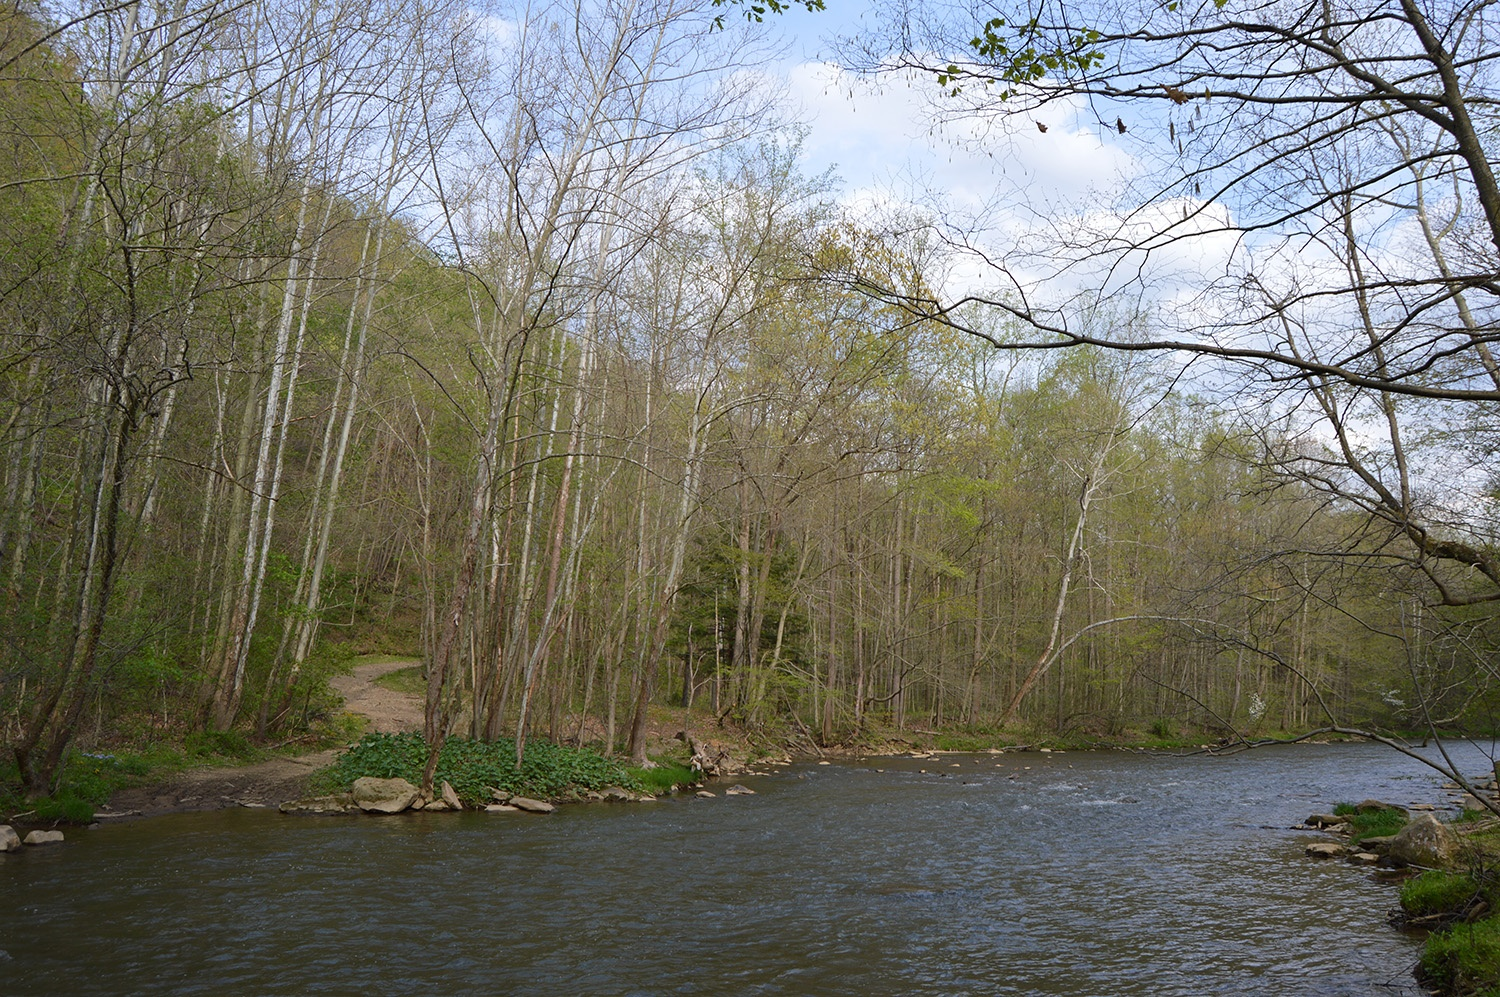 Jacob's Creek in Western Pennsylvania was the site of a Virginian settlement in the years prior to the American Revolution.